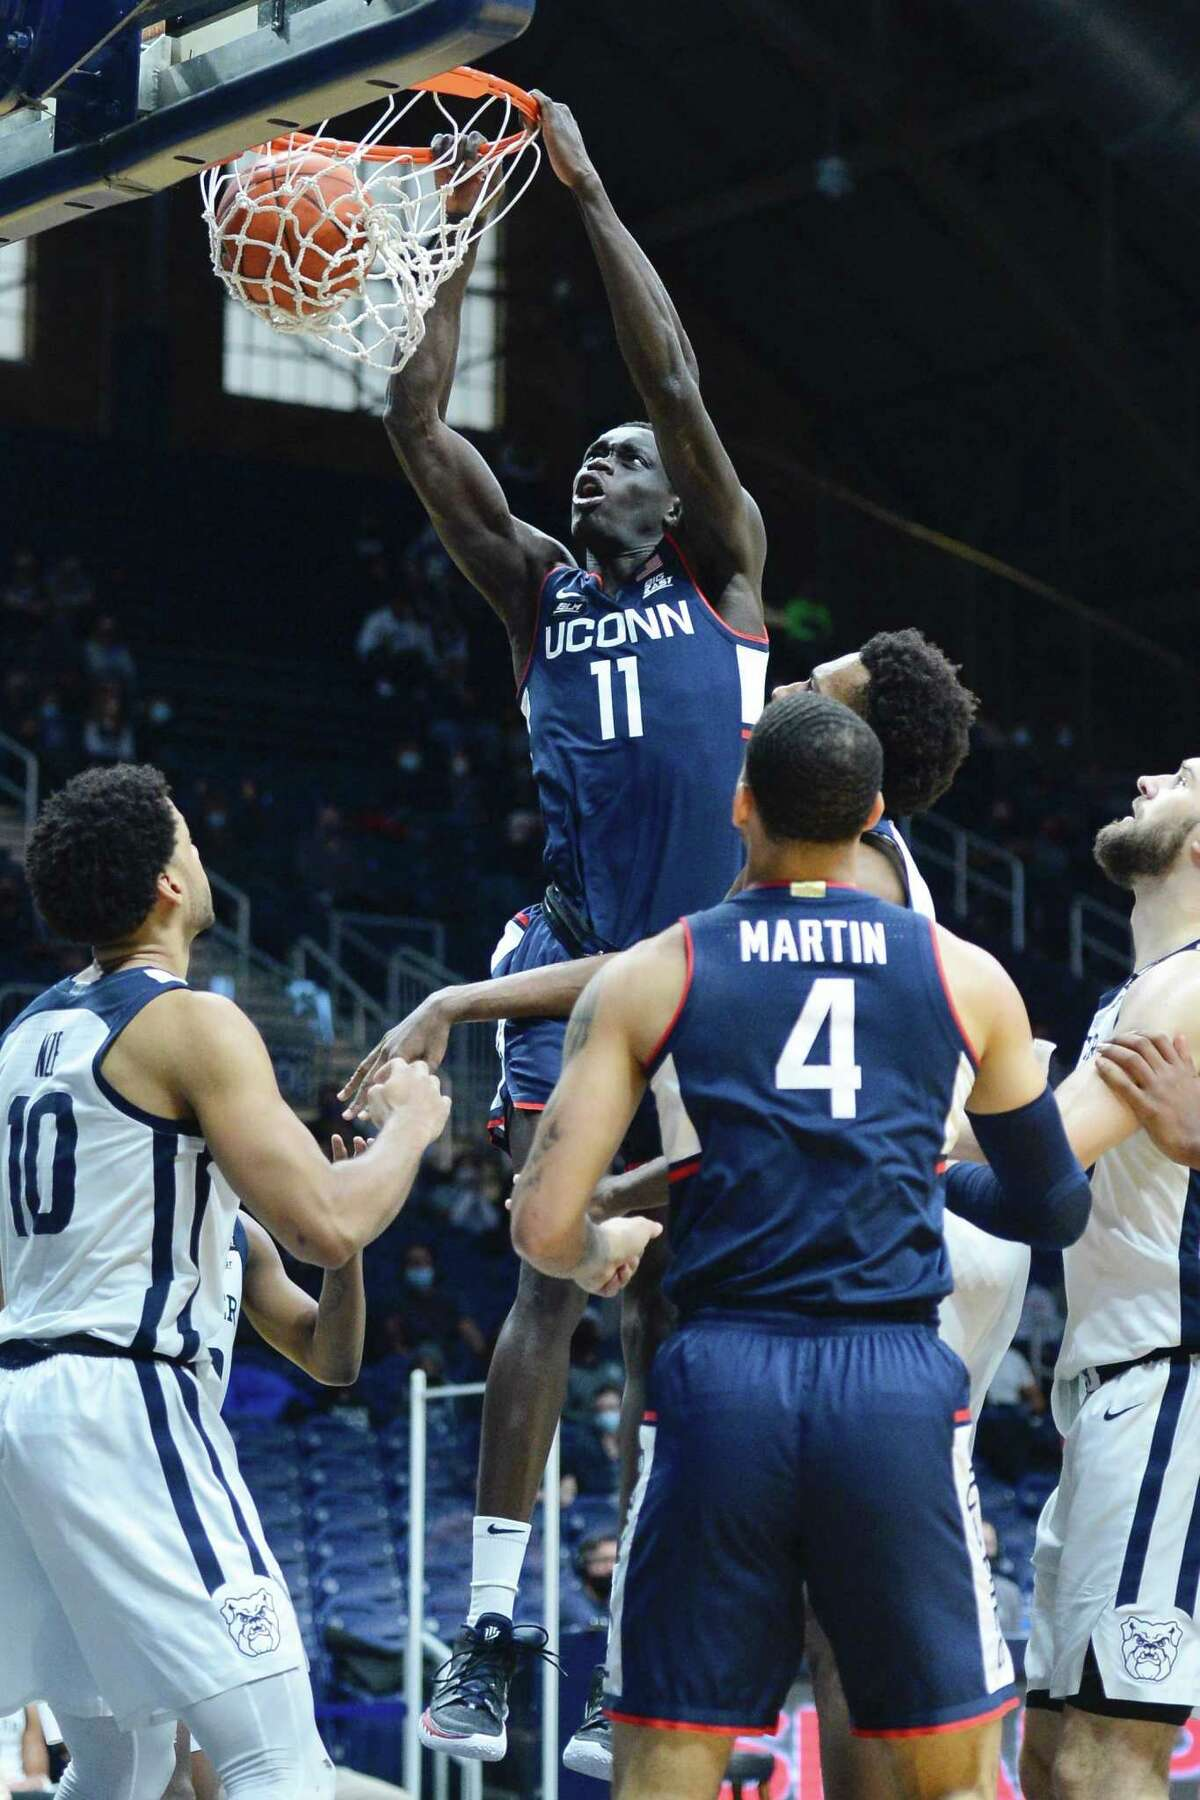 UConn's Akok Akok dunks during Saturday's game against Butler.